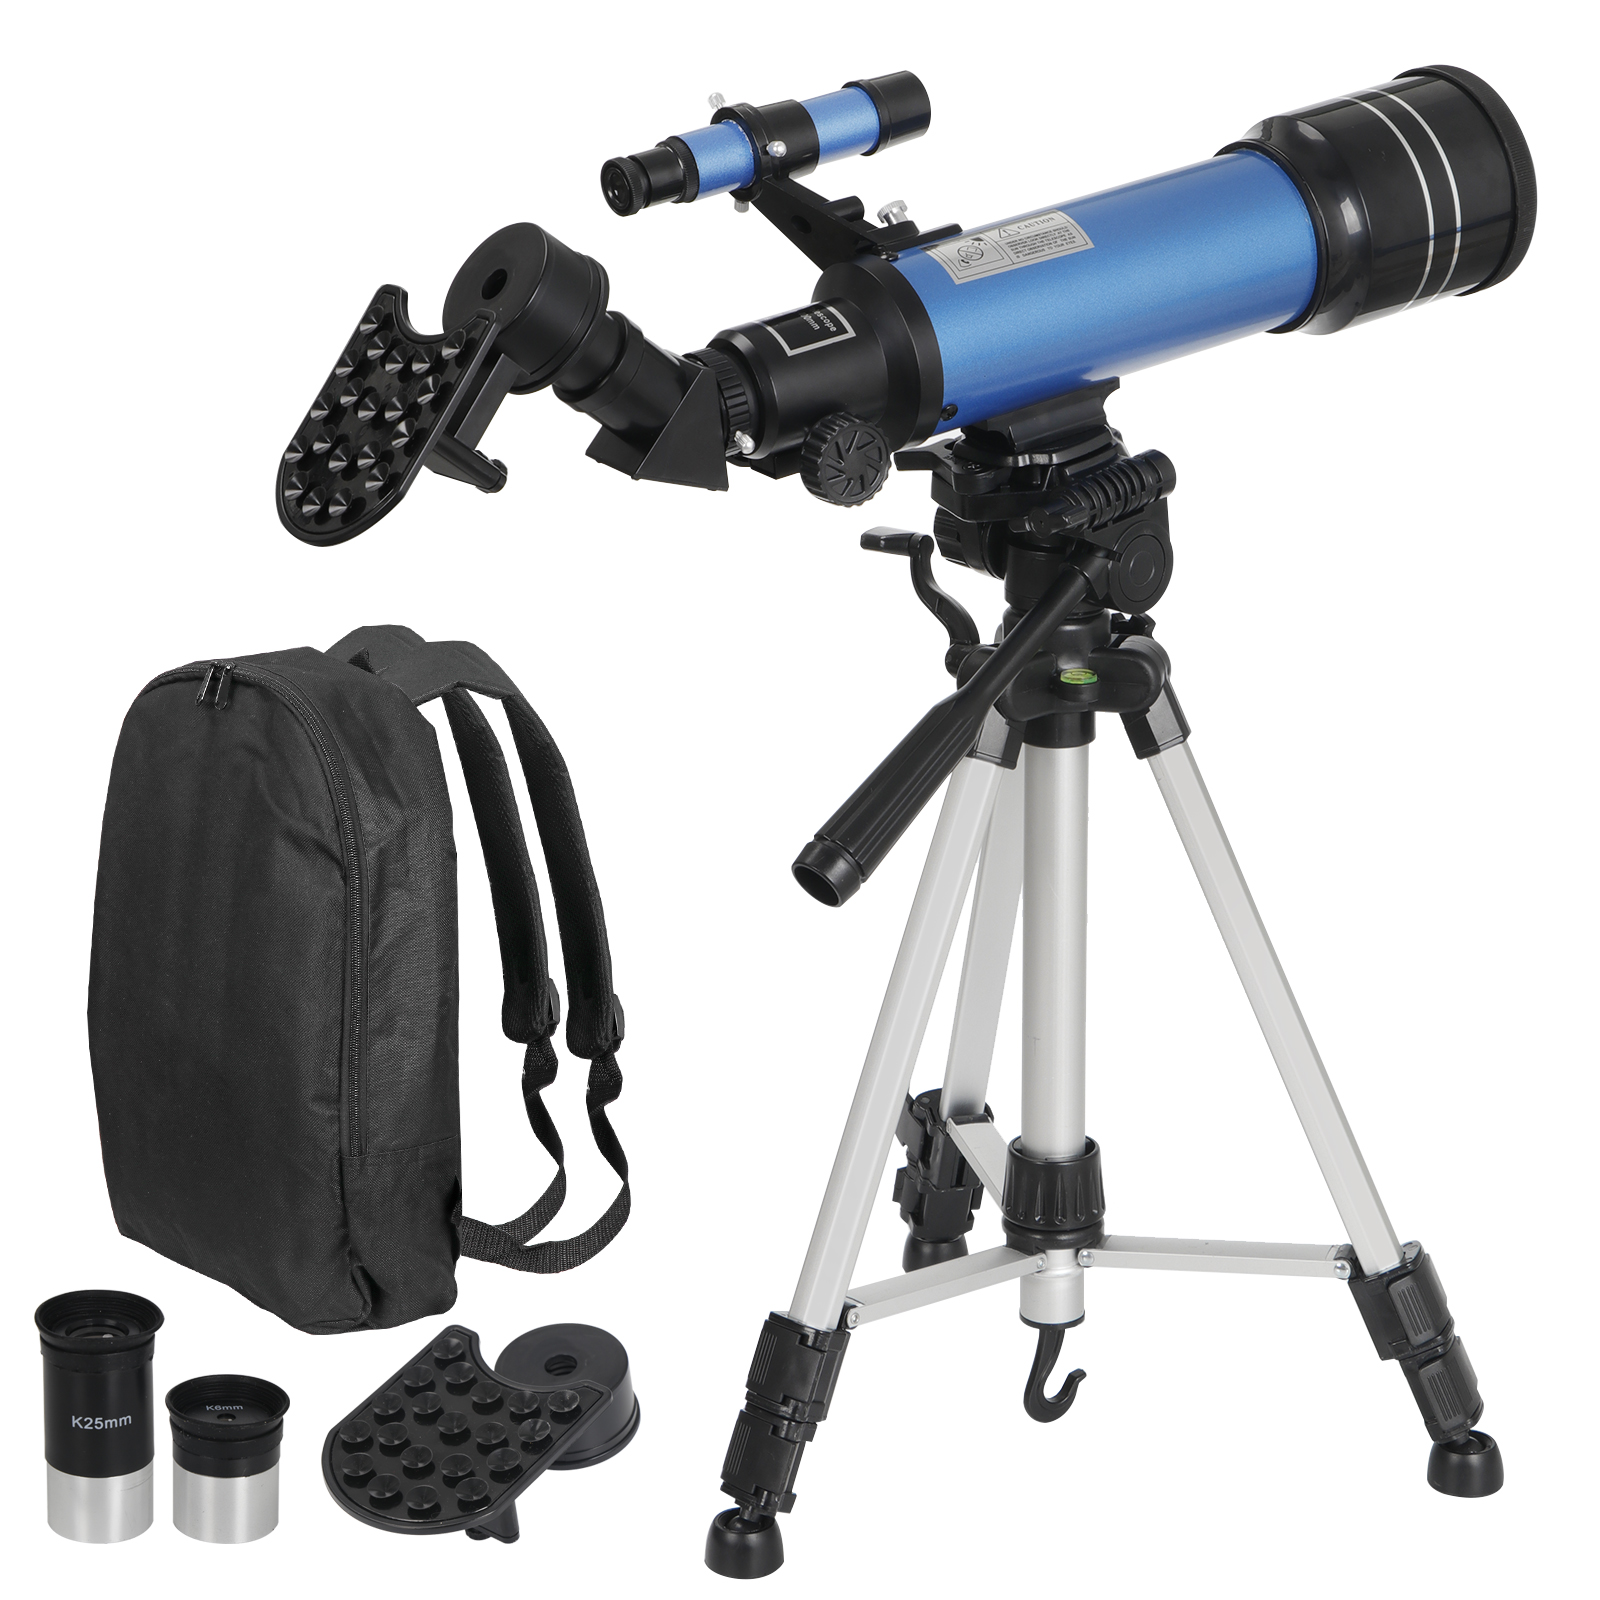 Zeny Telescope for Kids and Adults 70mm Portable Travel Telescope Astronomy Refractor Telescopes with Universal Wheel Tripod Observing Moon and Scenery (Rucksack&Mobile Stands Included)